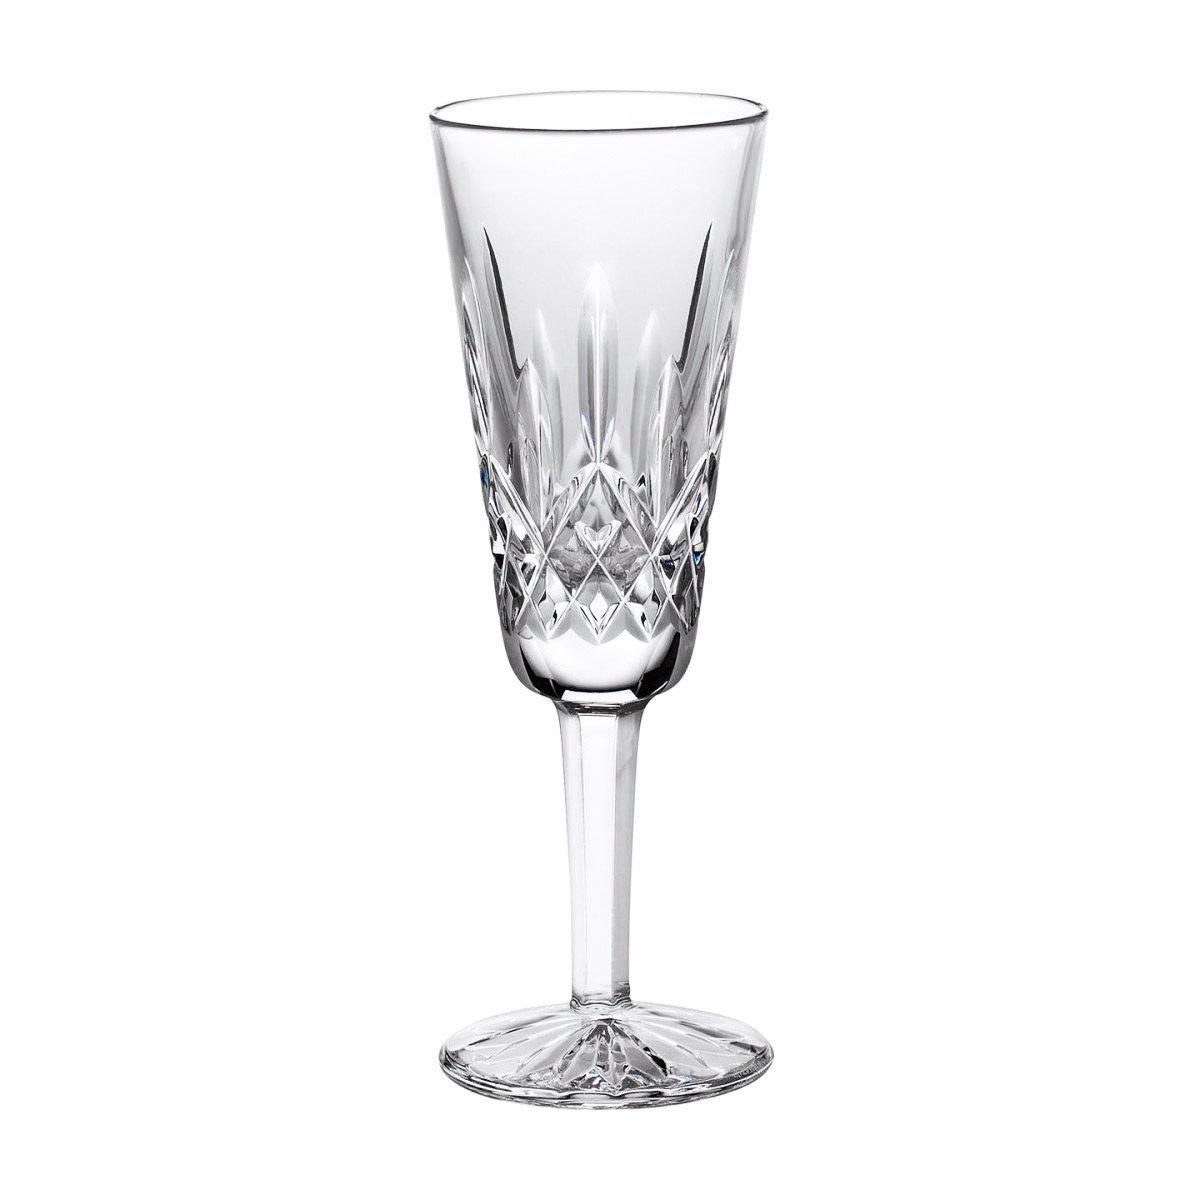 Waterford Lismore Champagne Flute, Single